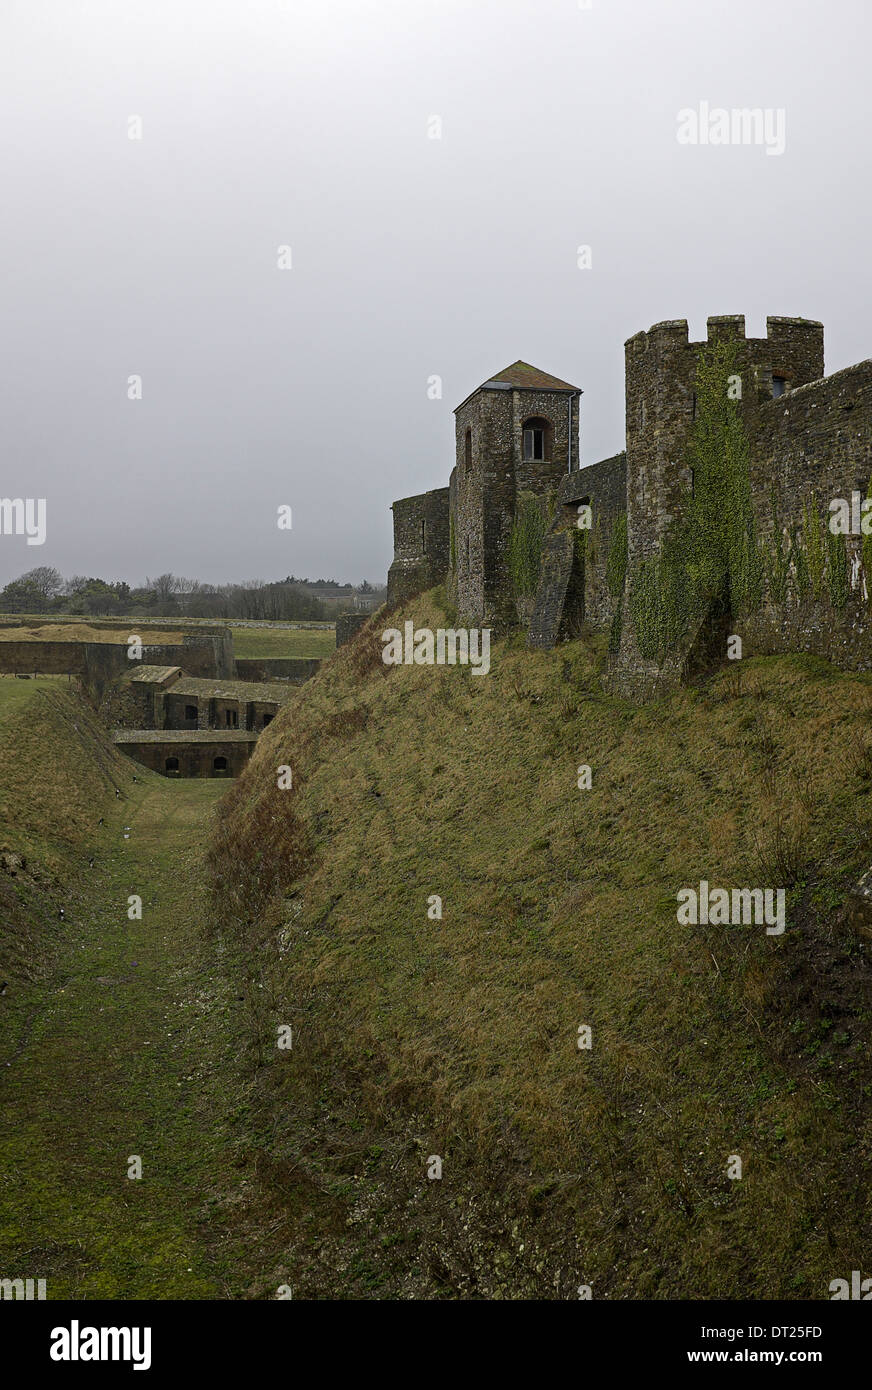 Tresurers Tower at right, then Godsfoe Tower & link to Medieval Tunnels at the foot of the moat. Stock Photo